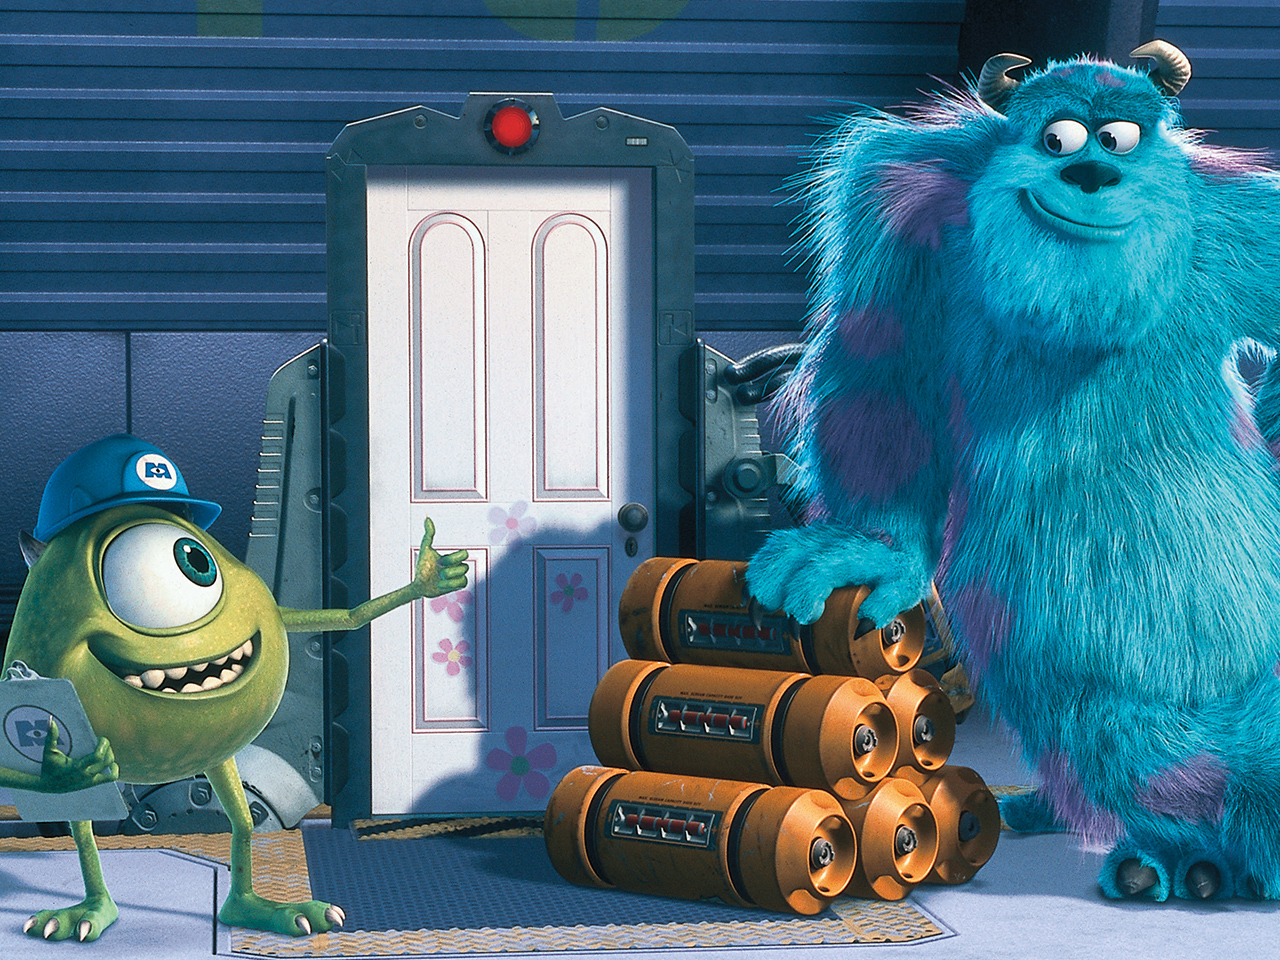 A still from the kids' animated movie Monsters Inc.